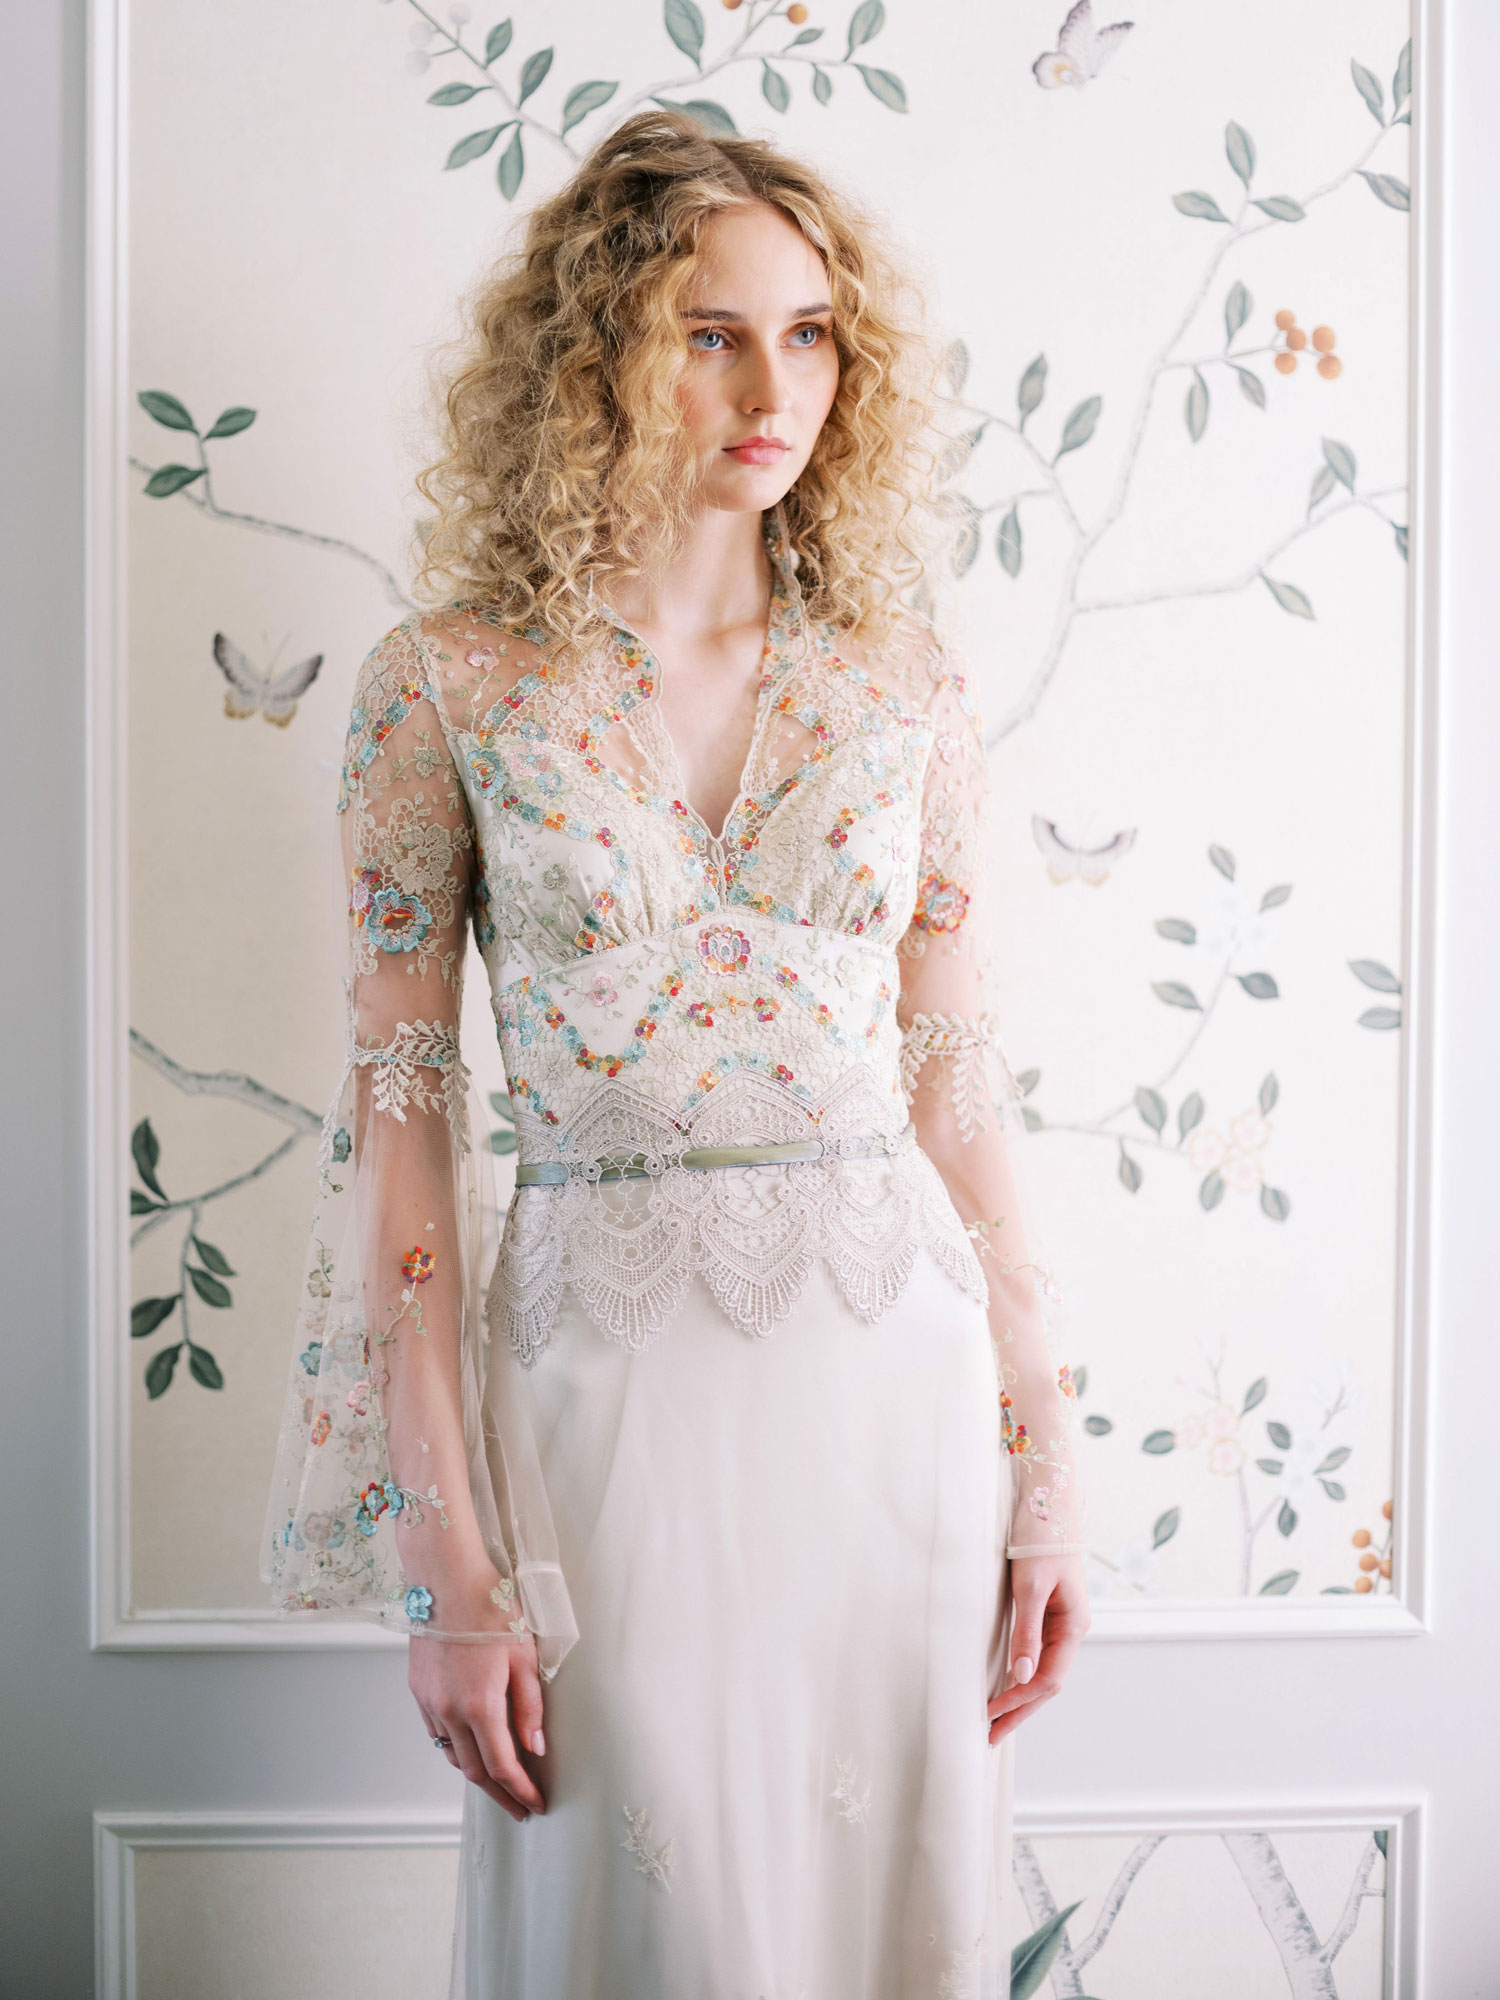 Claire Pettibone Evolution 2020 bridal collection Vida sheer long sleeve wedding dress